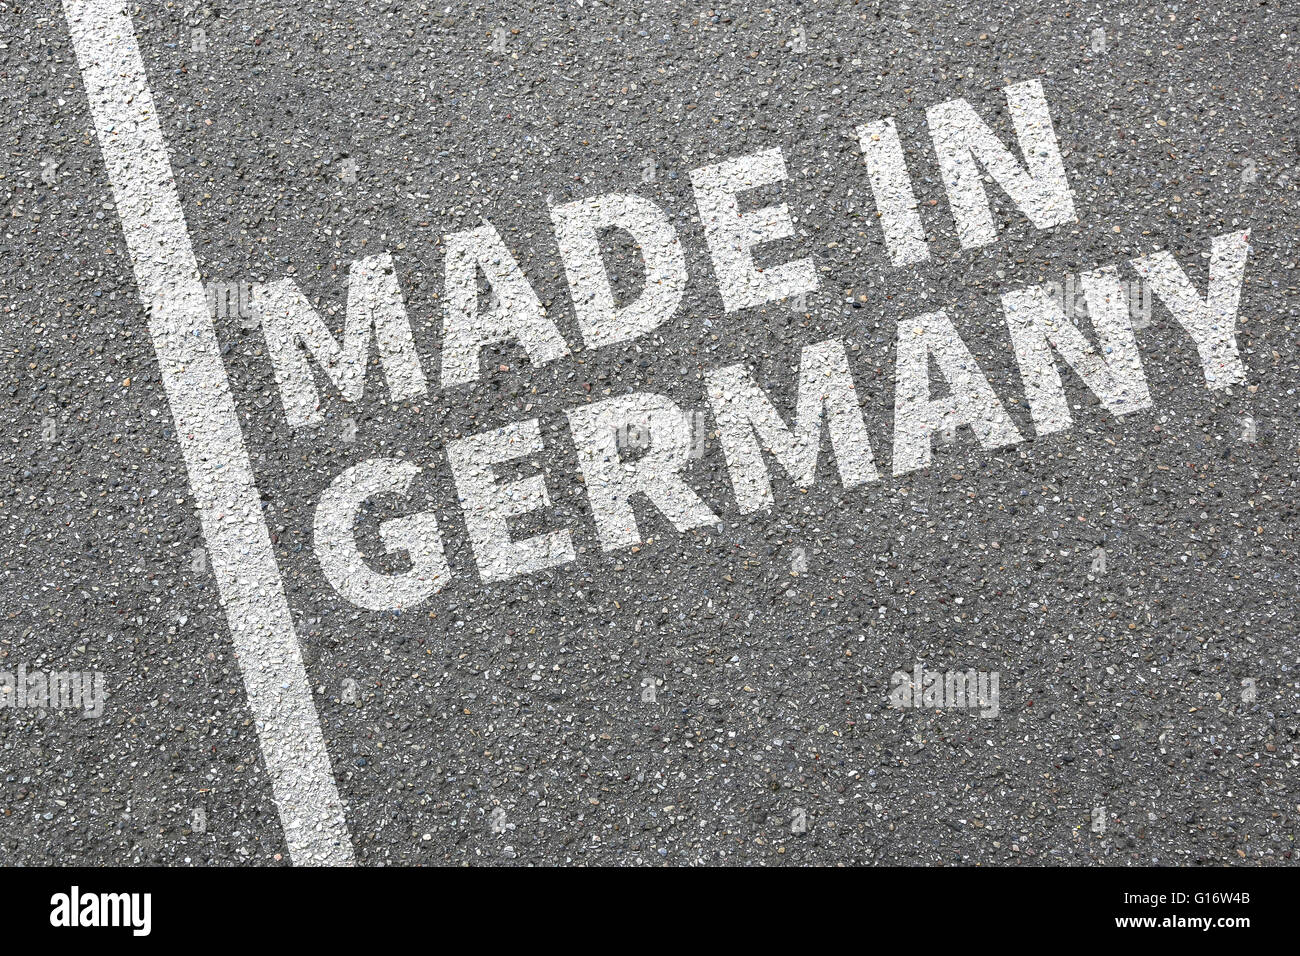 Made in Germany product quality marketing company concept - Stock Image